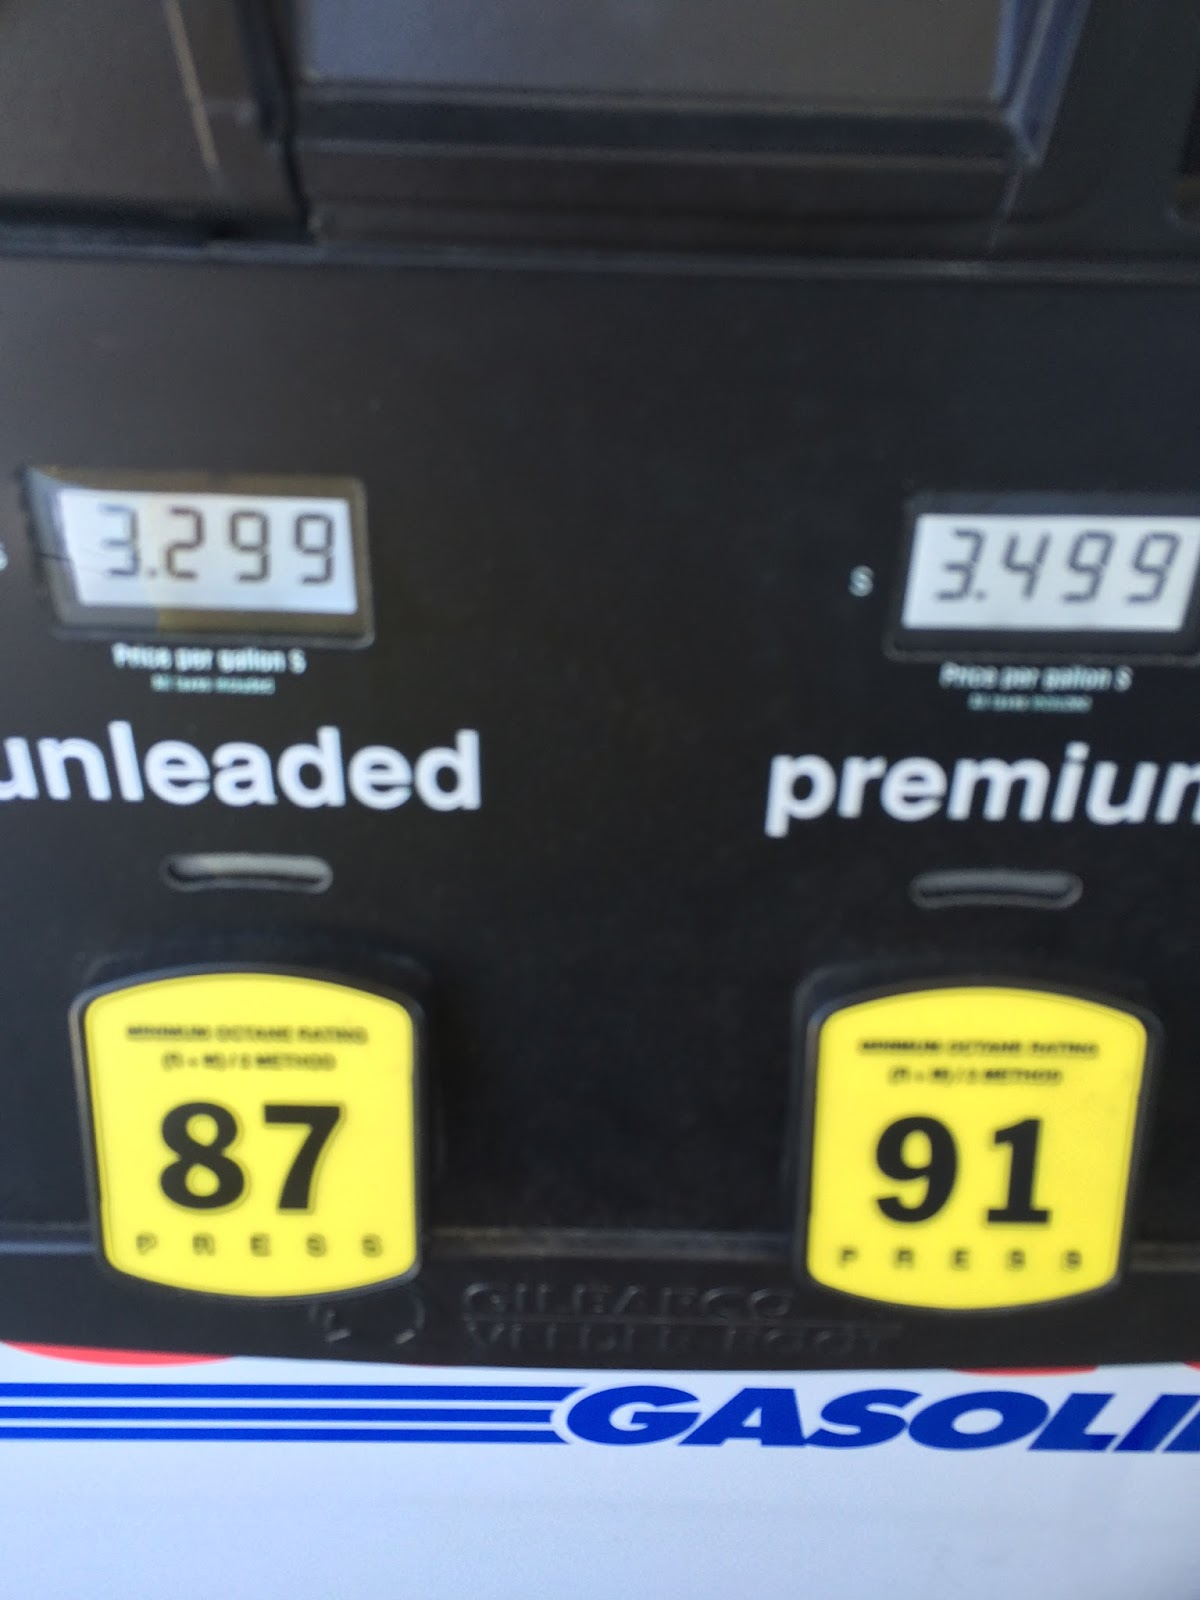 Current Costco Gas Prices Apr 30 2015 South San